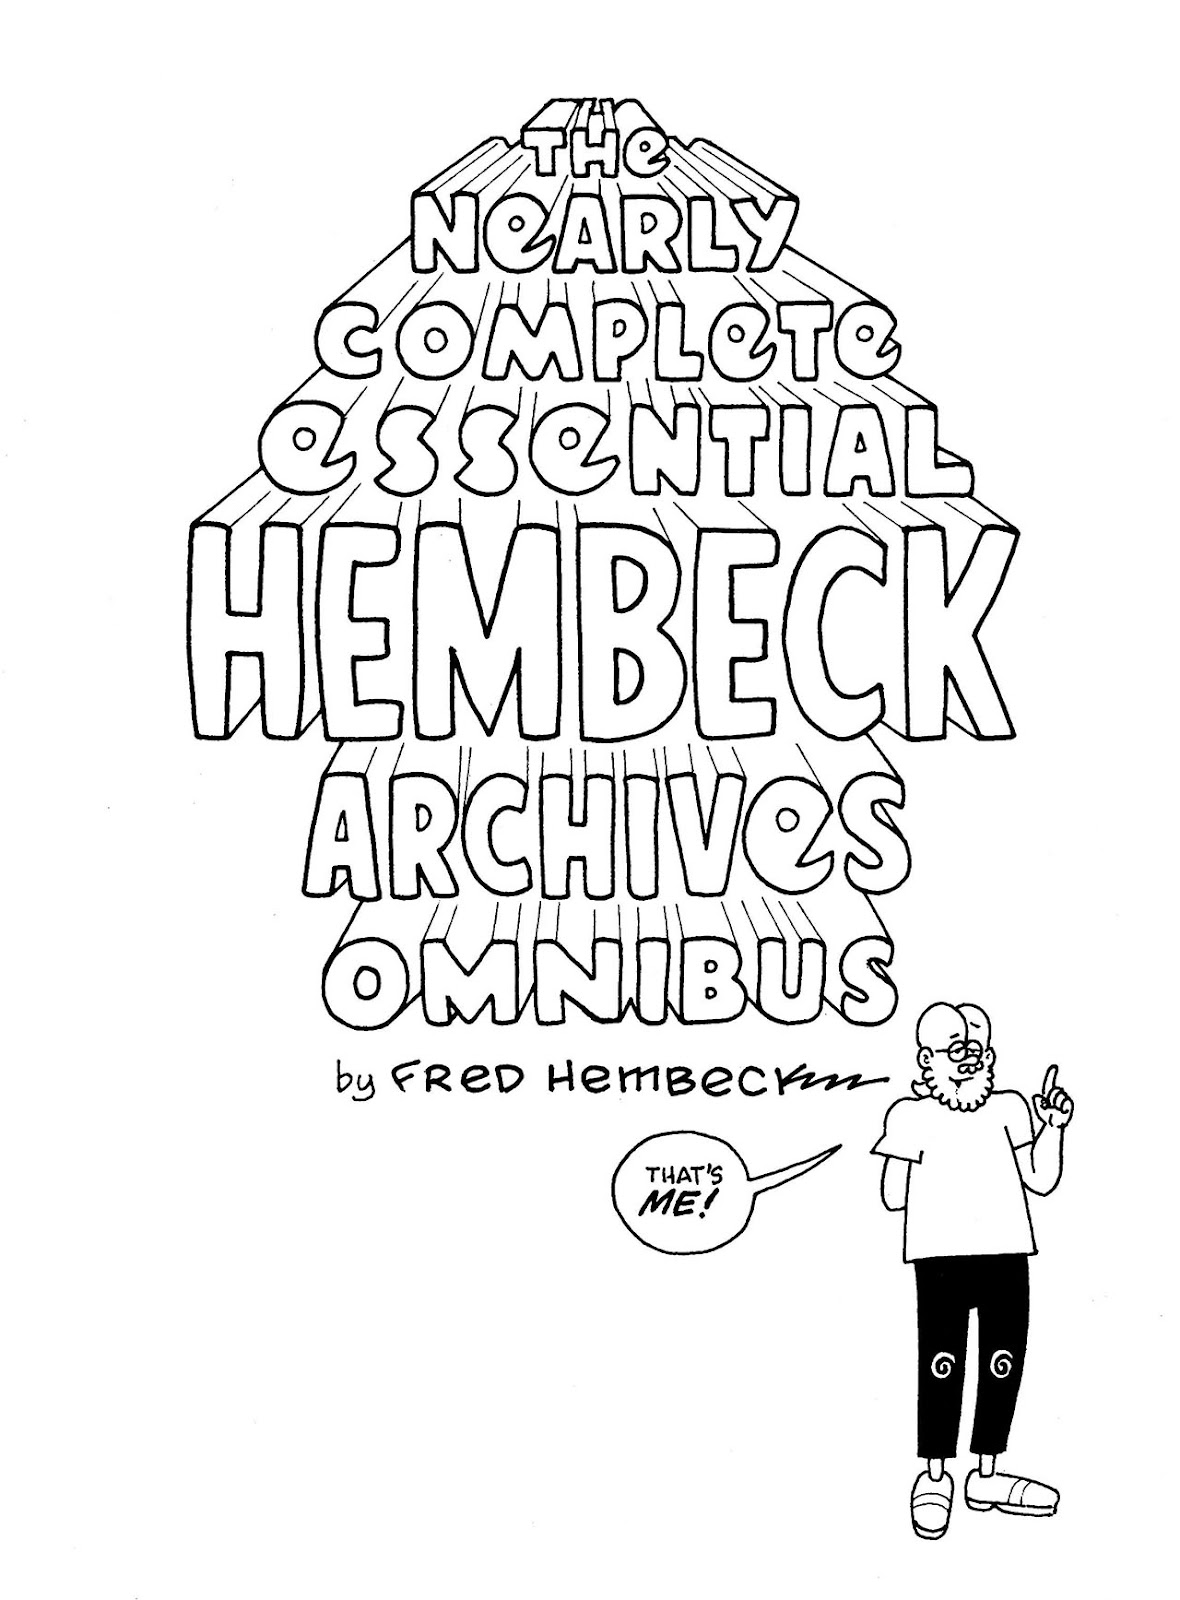 Read online The Nearly Complete Essential Hembeck Archives Omnibus comic -  Issue # TPB (Part 1) - 4